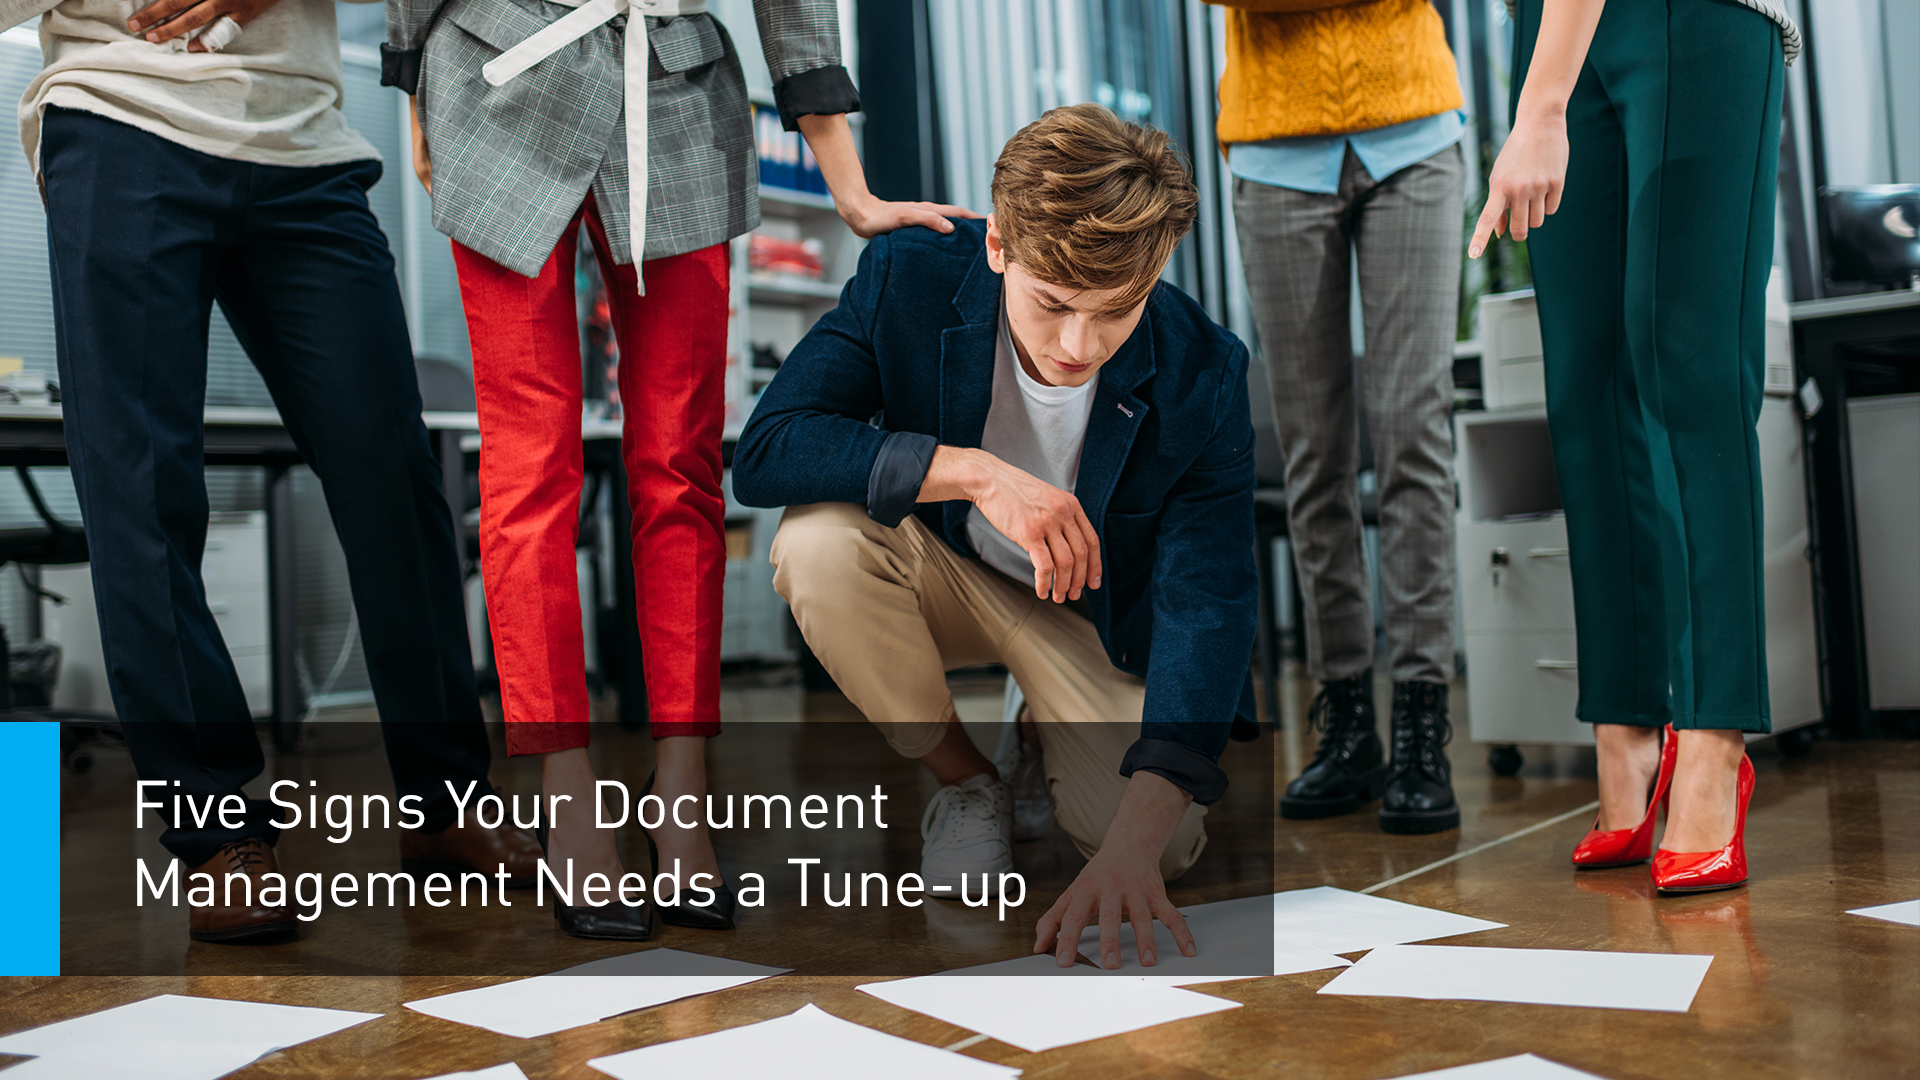 Document management tune up